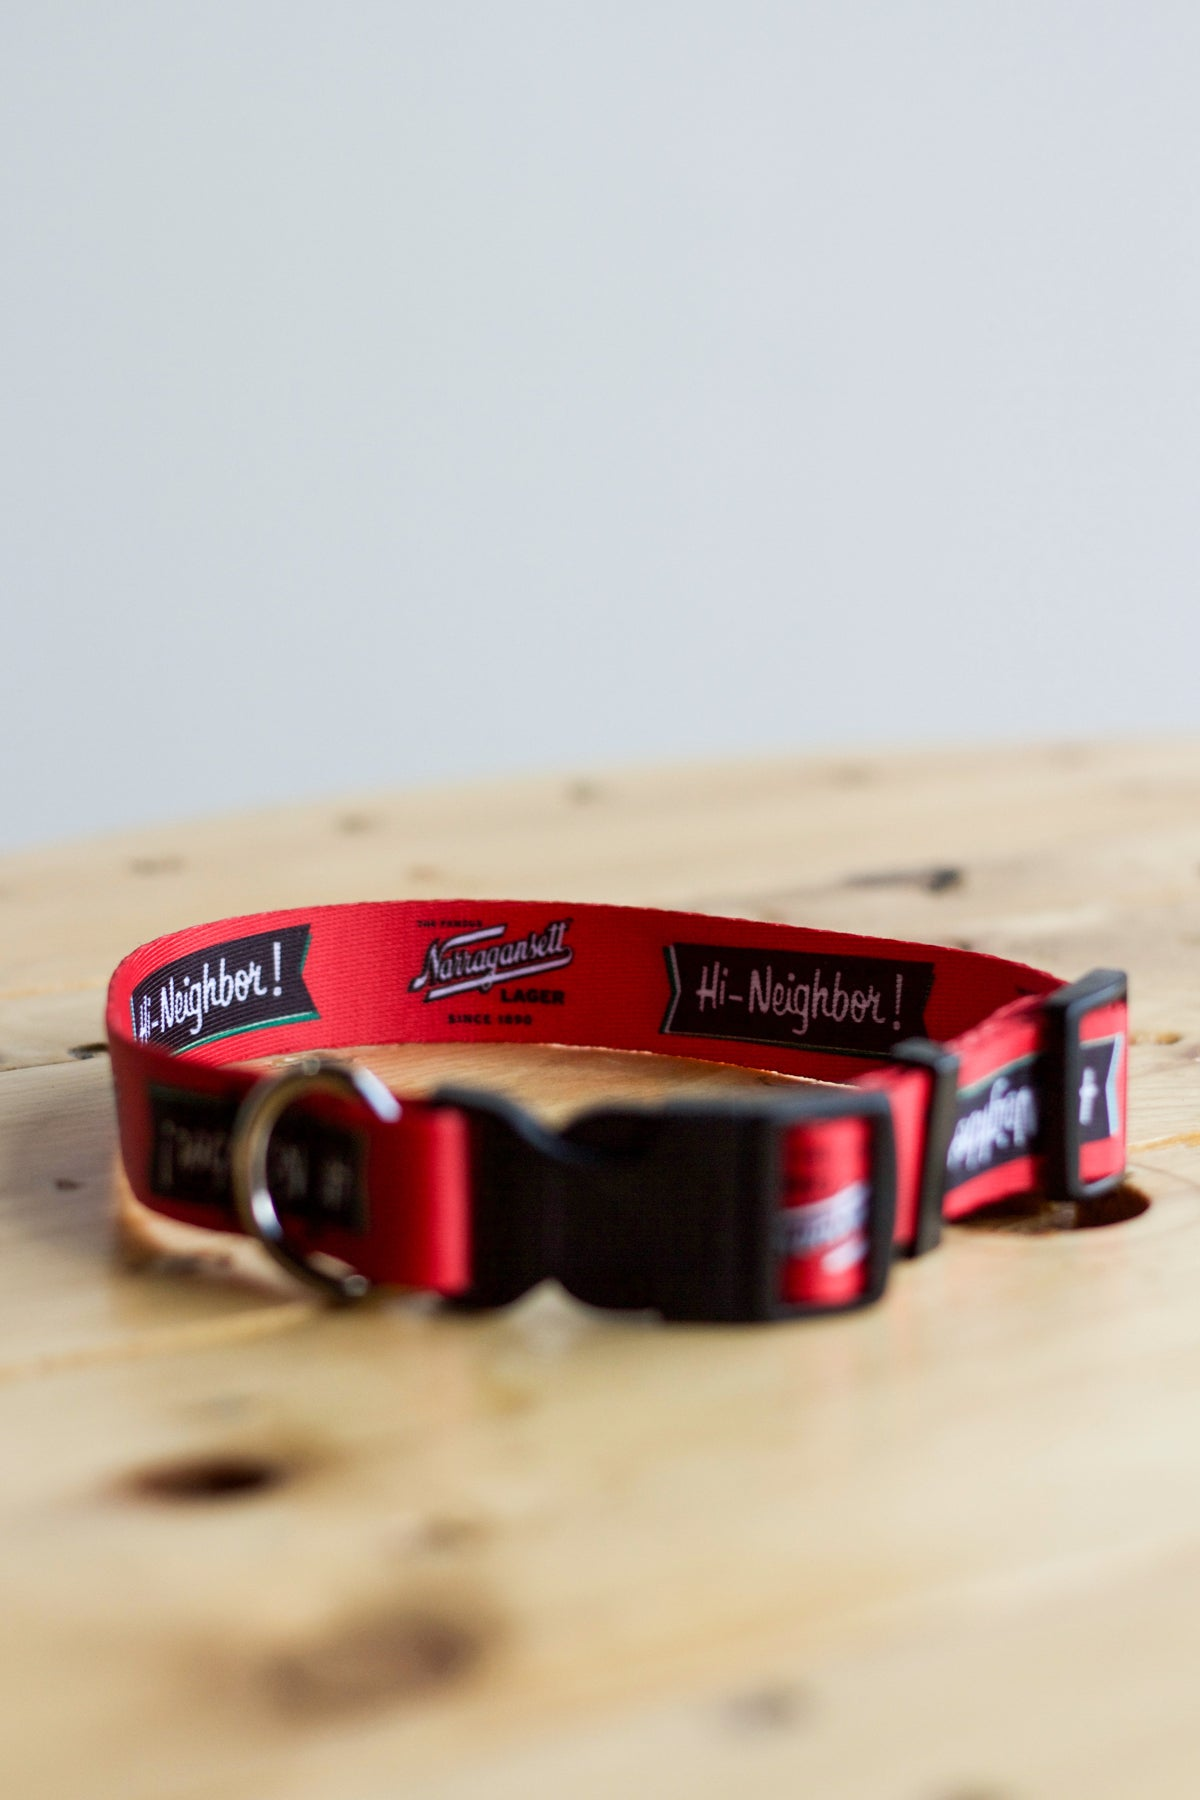 The Dog Collar